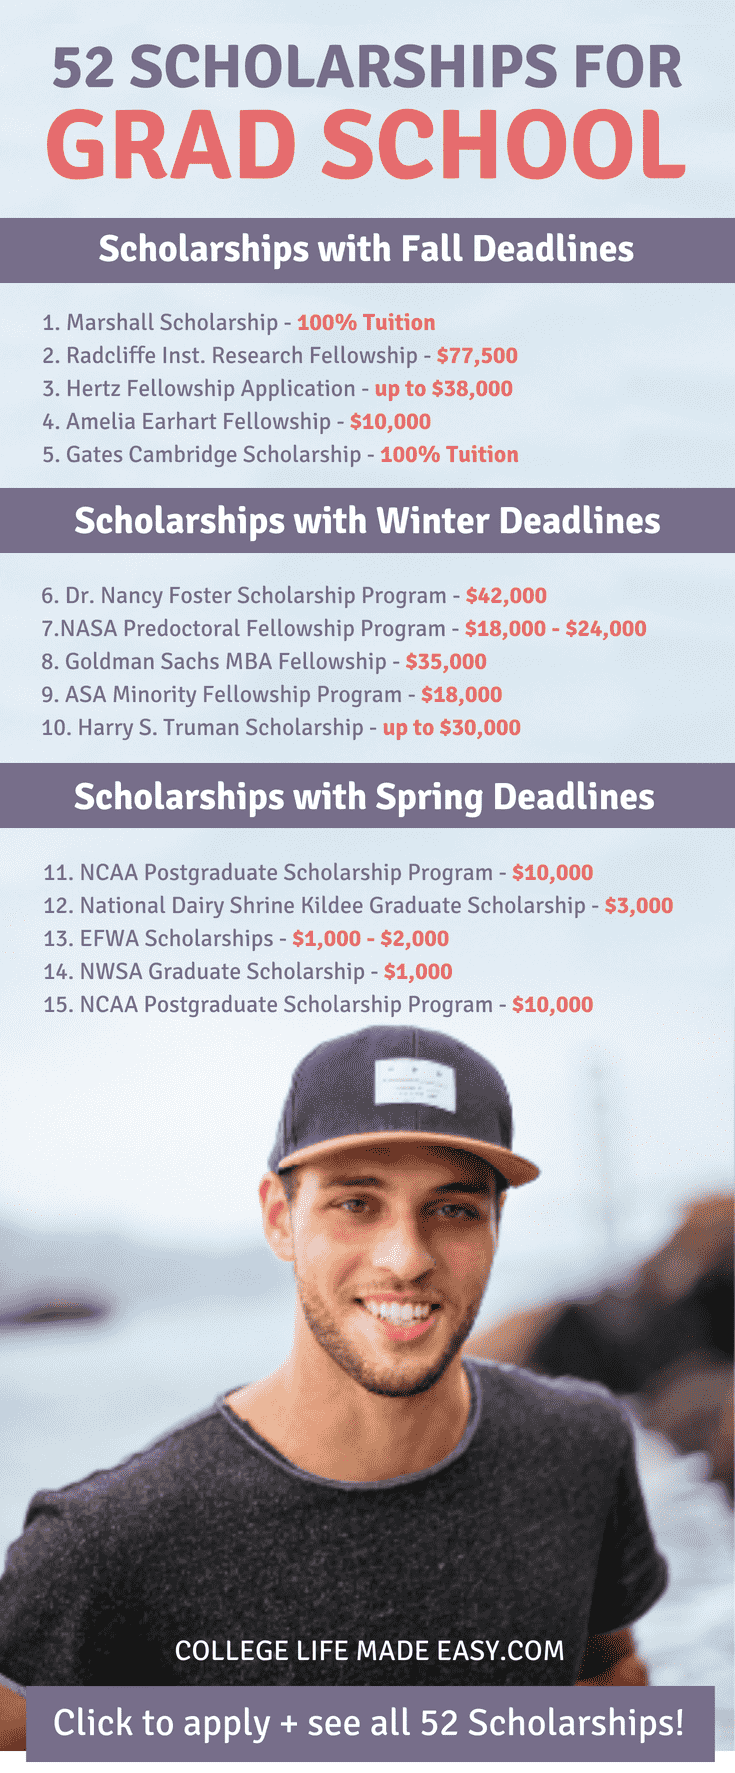 49+ Scholarships for Graduate Students (Get Your Next Degree for as little as Free!) 1